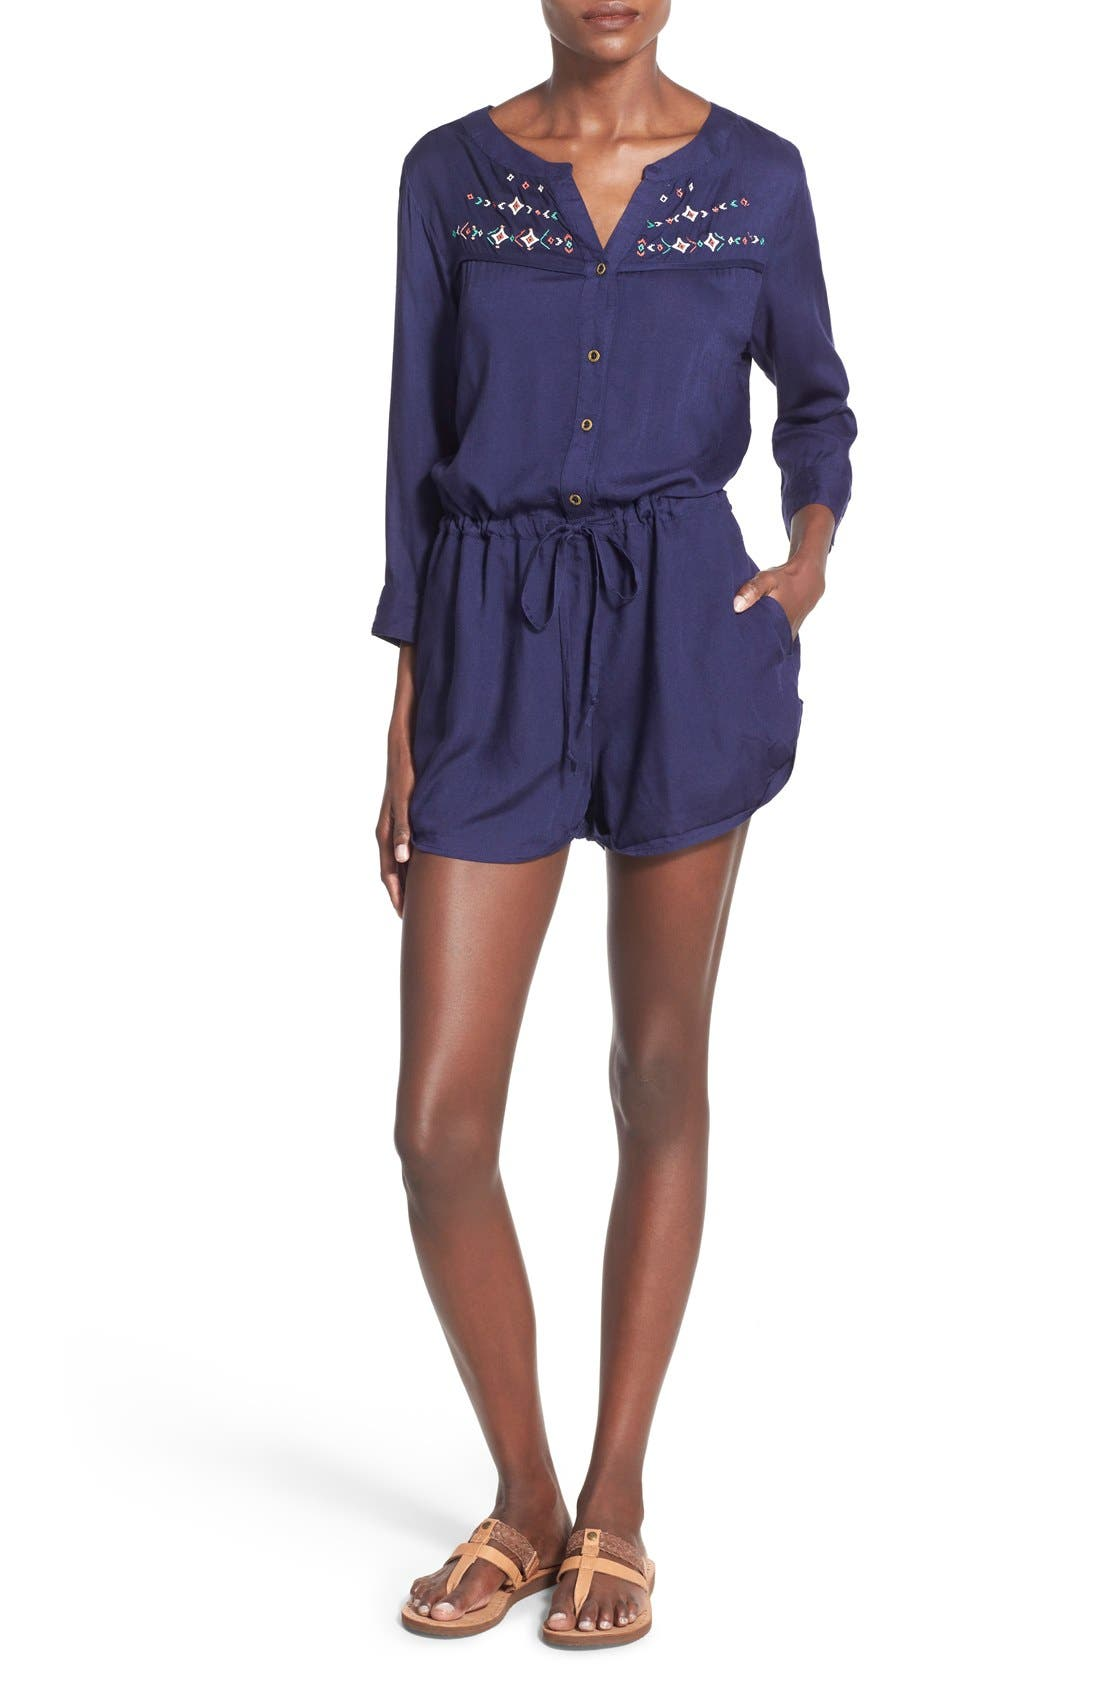 Alternate Image 1 Selected - Roxy 'Tightrope' Embroidered Romper